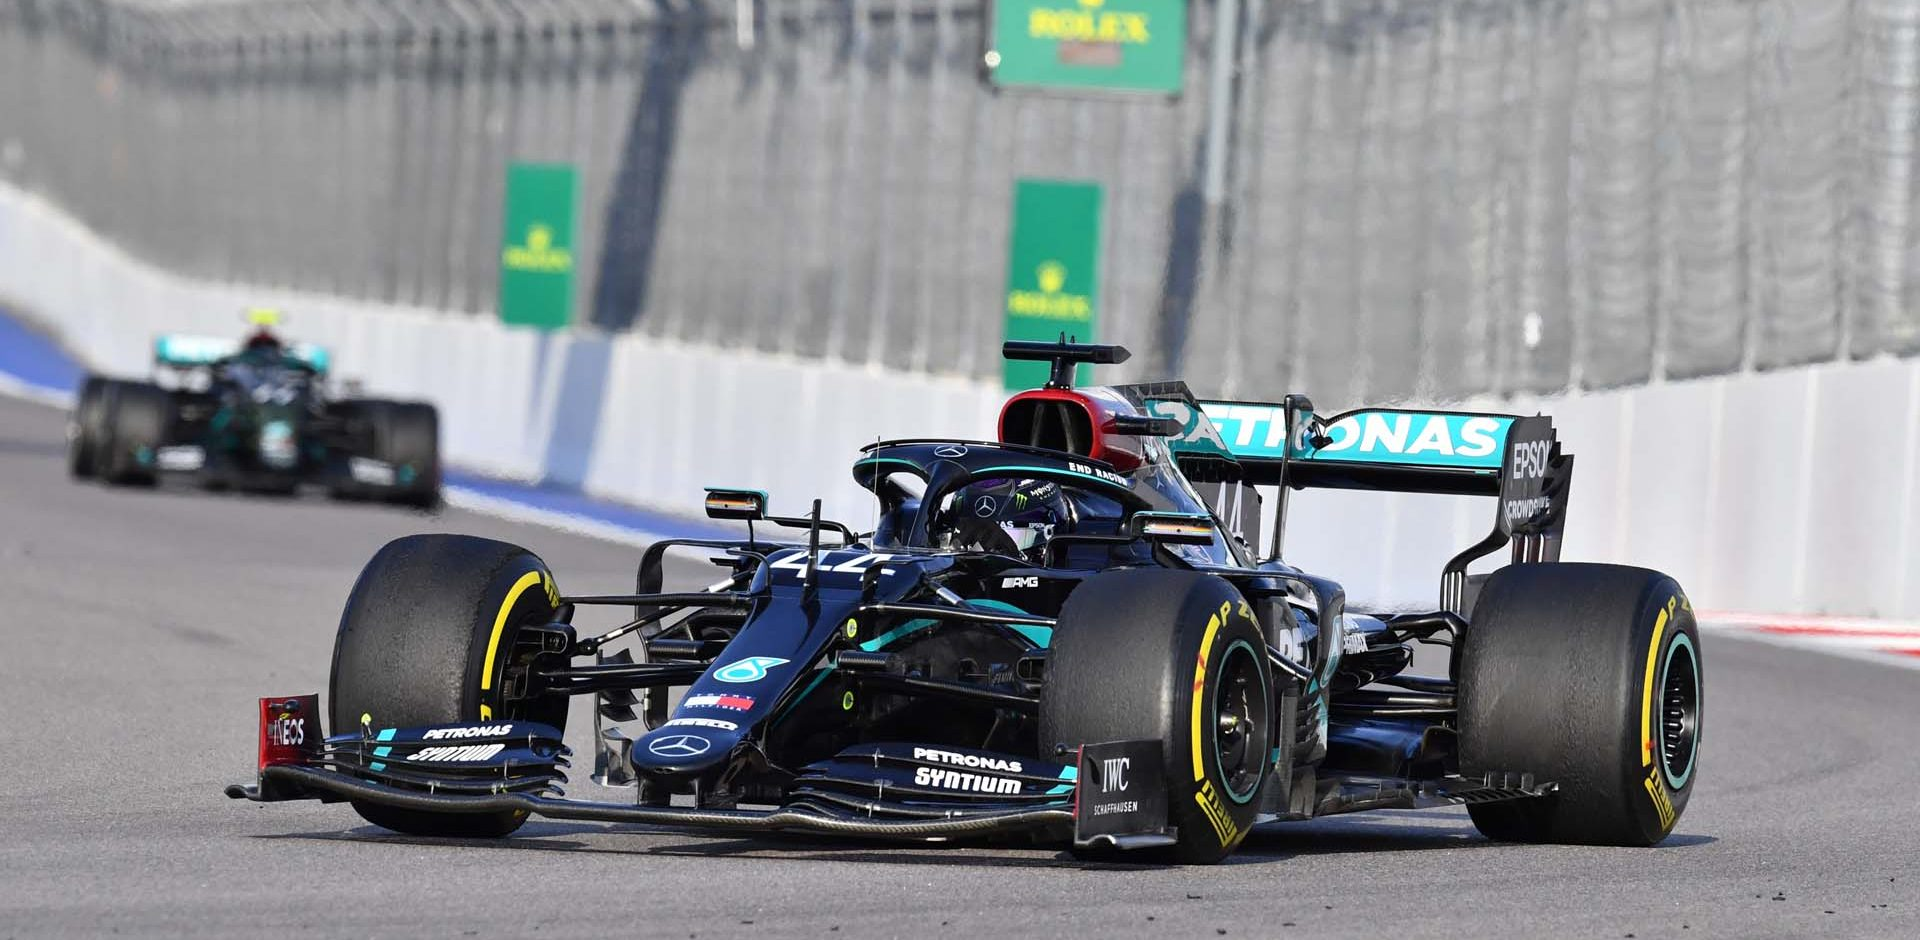 2020 Russian Grand Prix, Saturday - Wolfgang Wilhelm Lewis Hamilton Mercedes